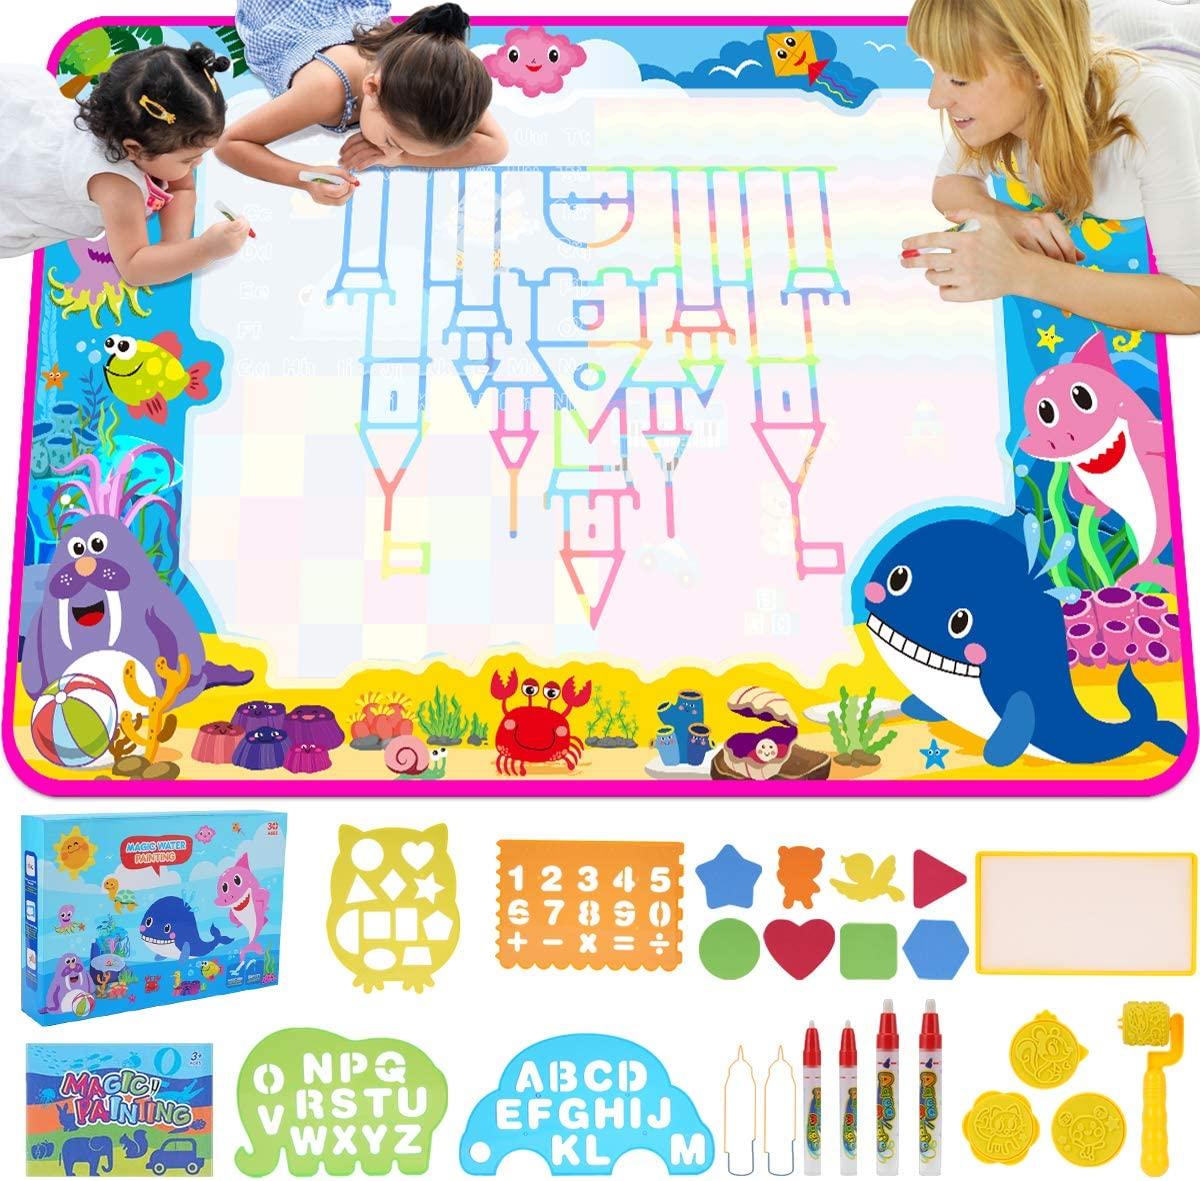 ESDPAL Aqua Magic Mat 60 X 40 inches Extra Large Water Drawing Doodle Mat Coloring Mat for Kids Toddlers 3 4 5 6 7 8 Year Old